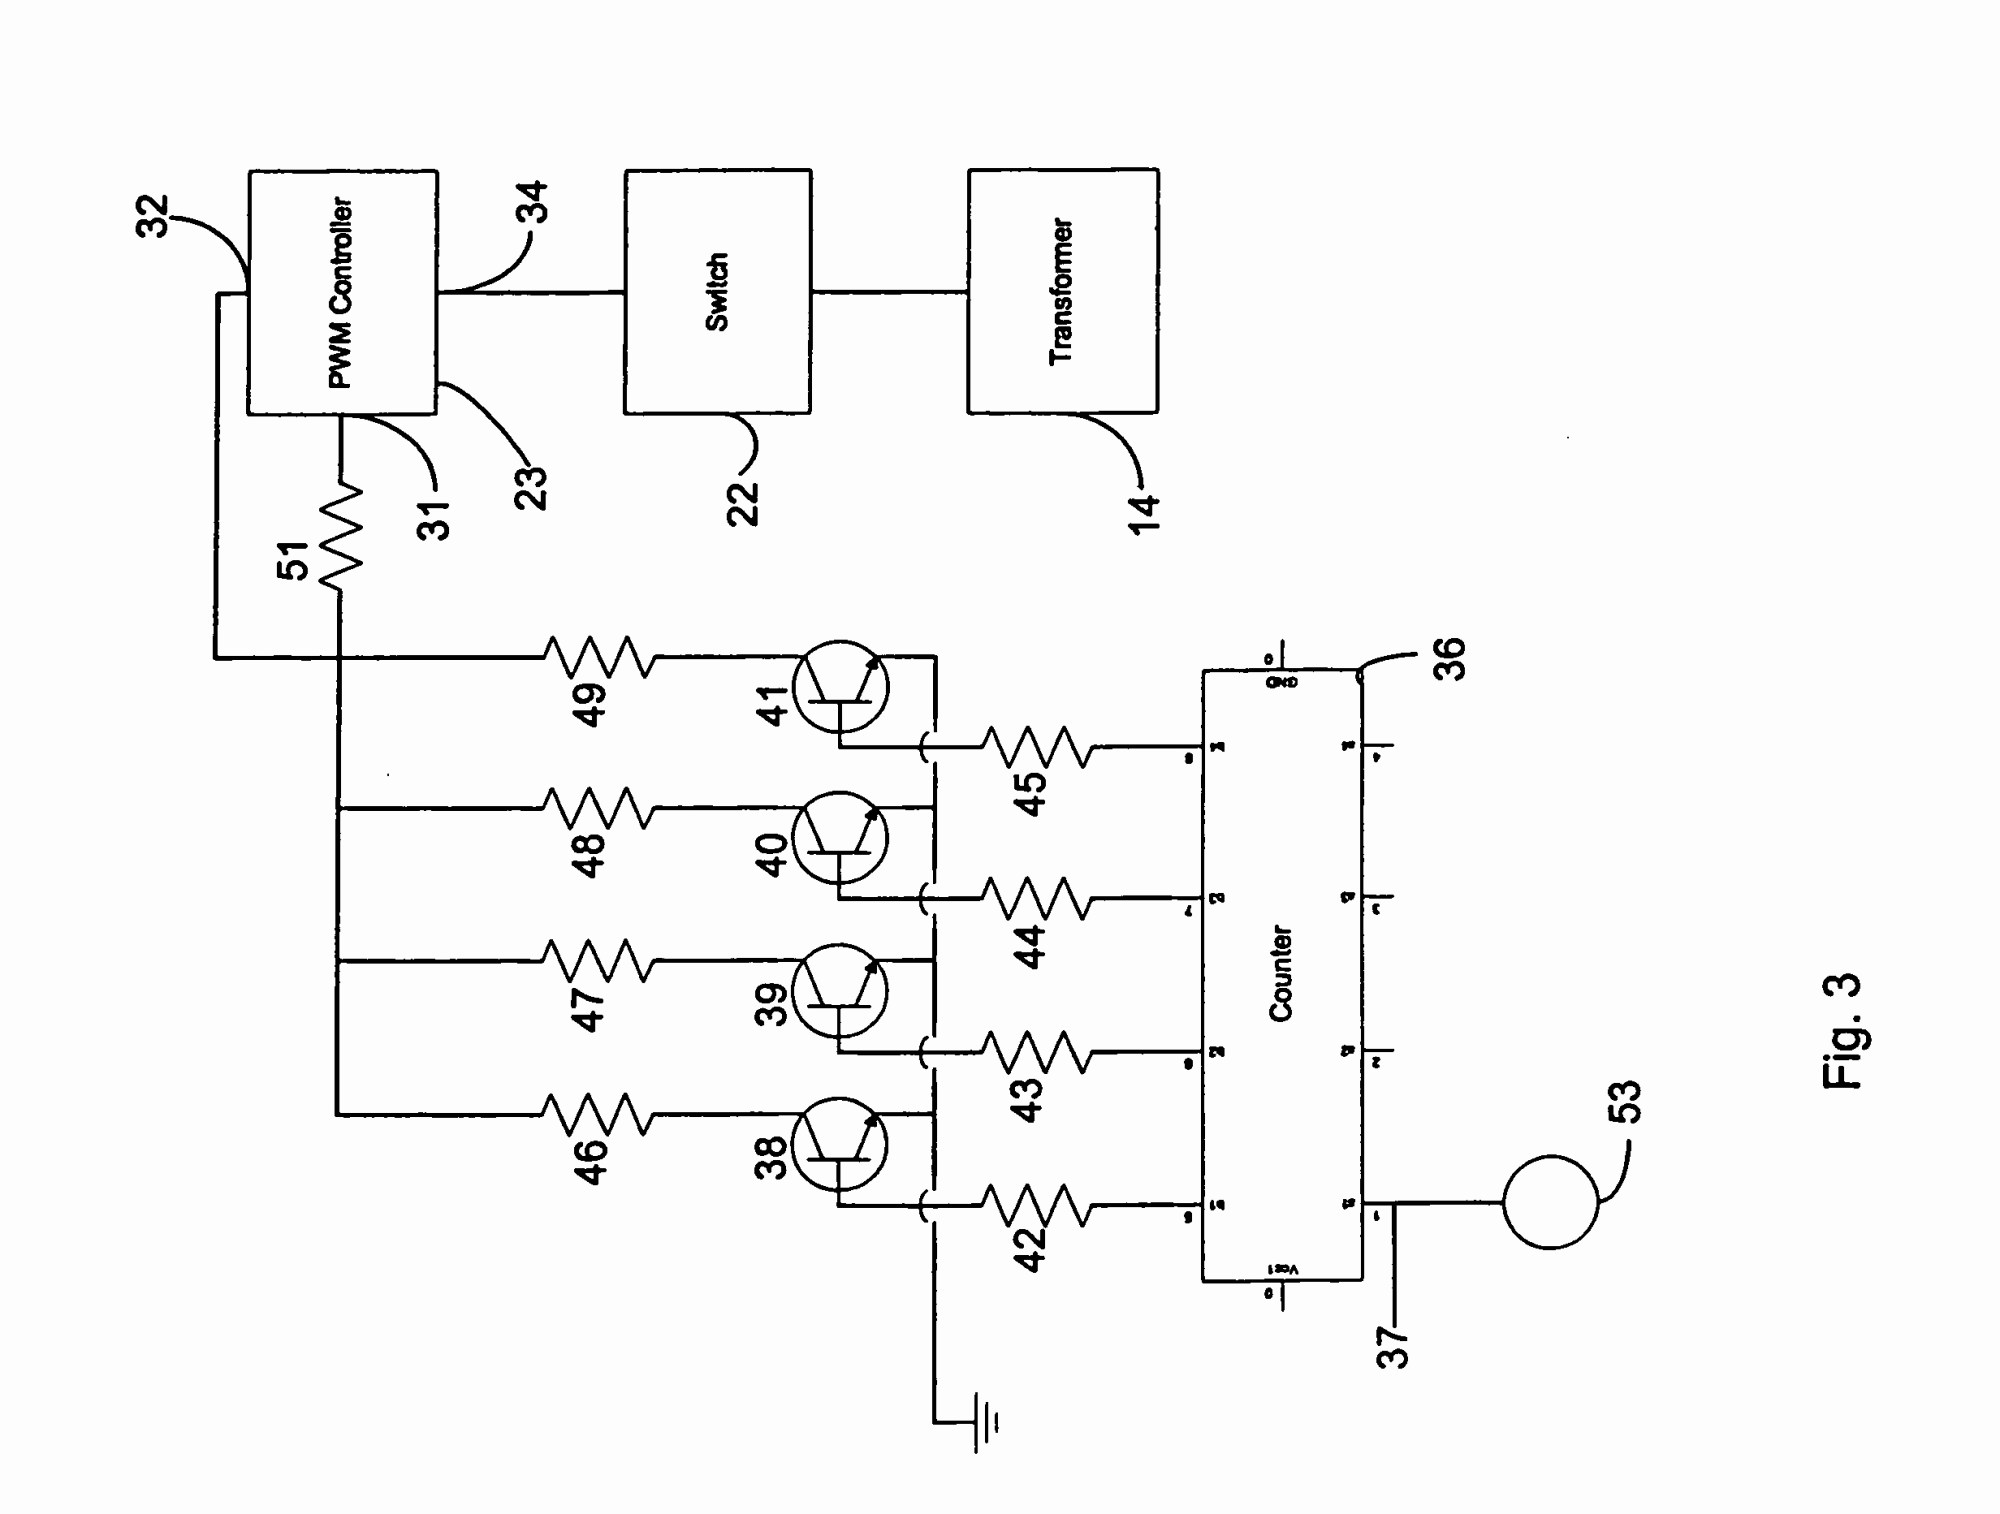 hight resolution of number 1014 century battery charger wiring diagram wiring library century battery charger wiring diagram